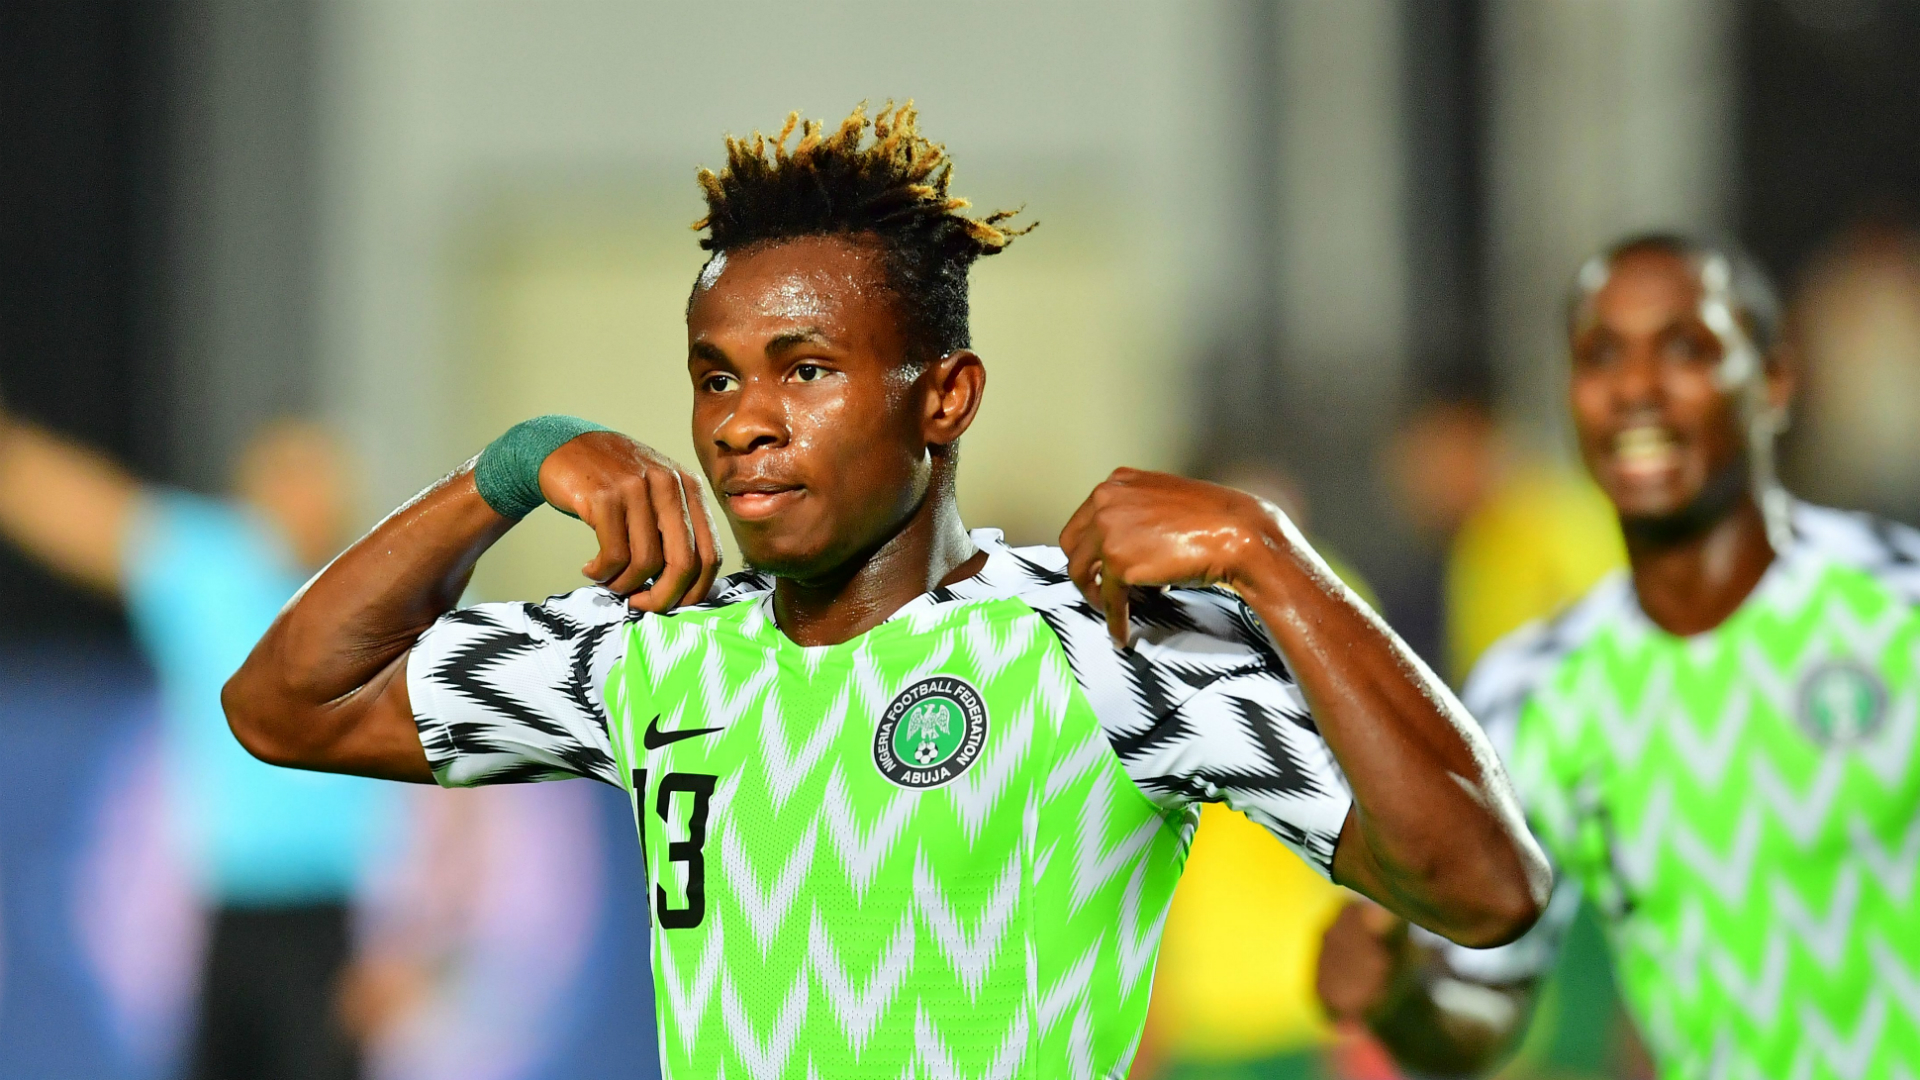 EXCLUSIVE: It is a dream to play with my idols for Super Eagles - Chukwueze